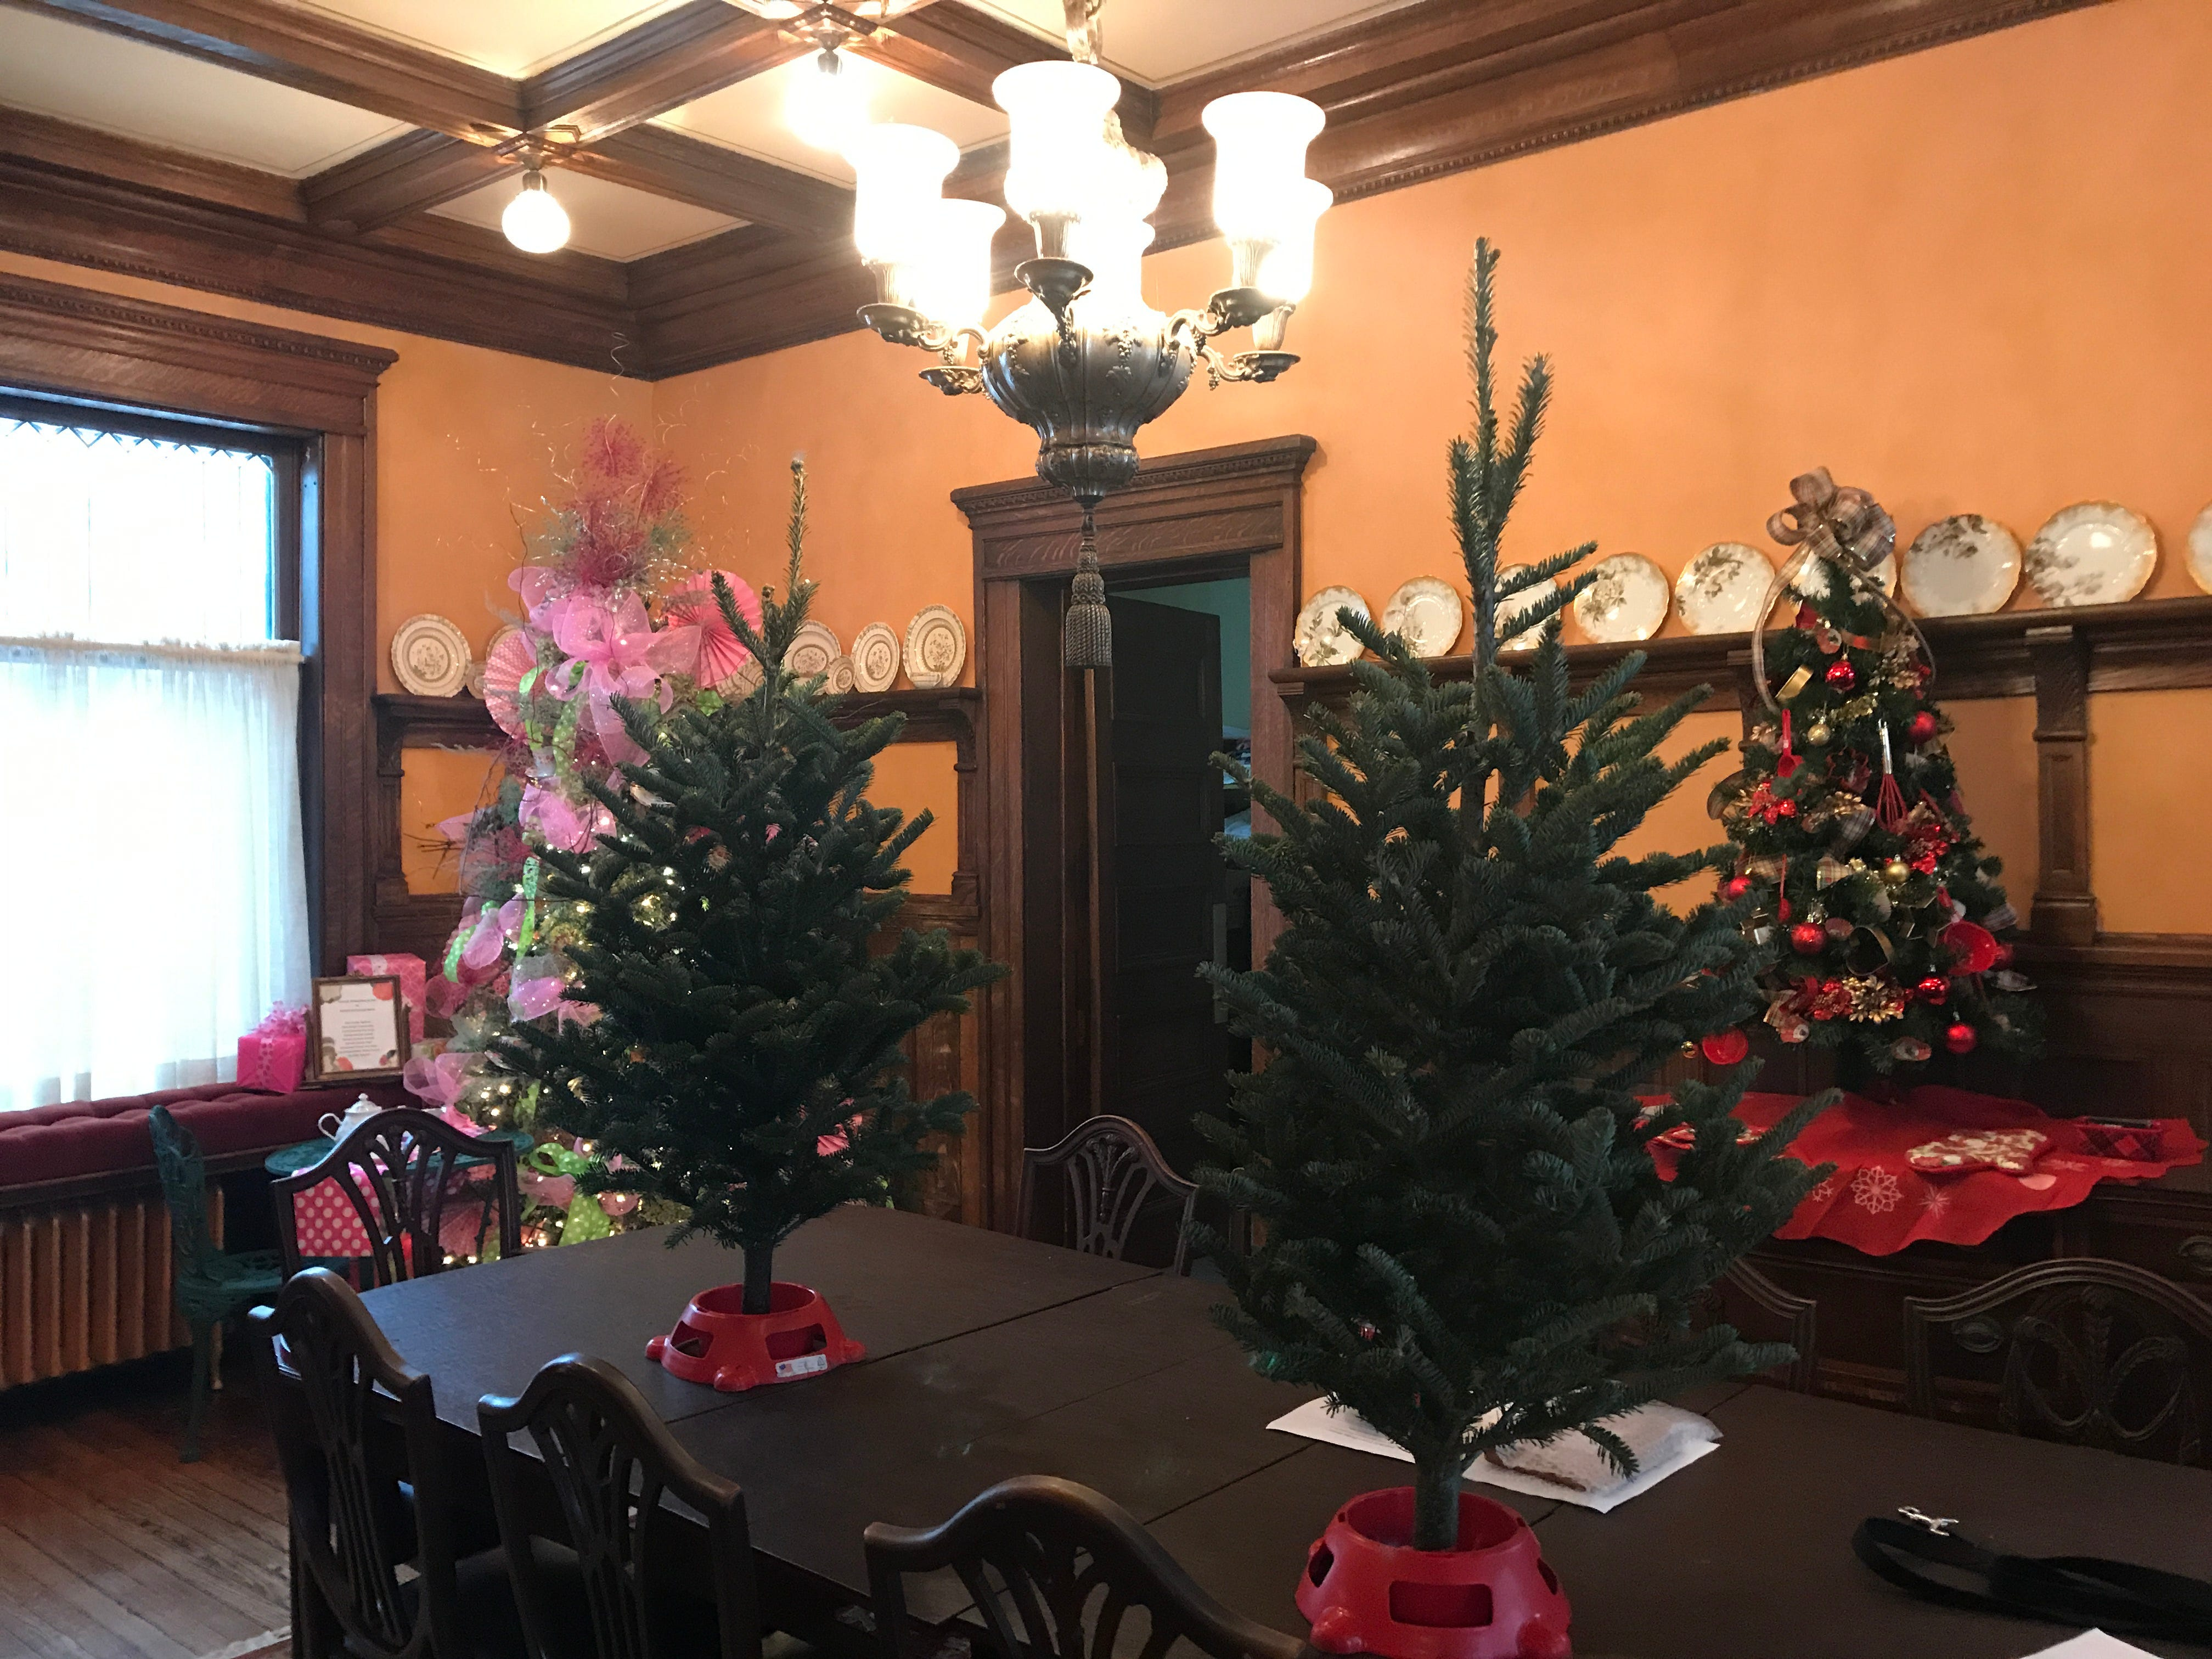 Tabletop trees await decorating of the 2018 Festival of Trees.